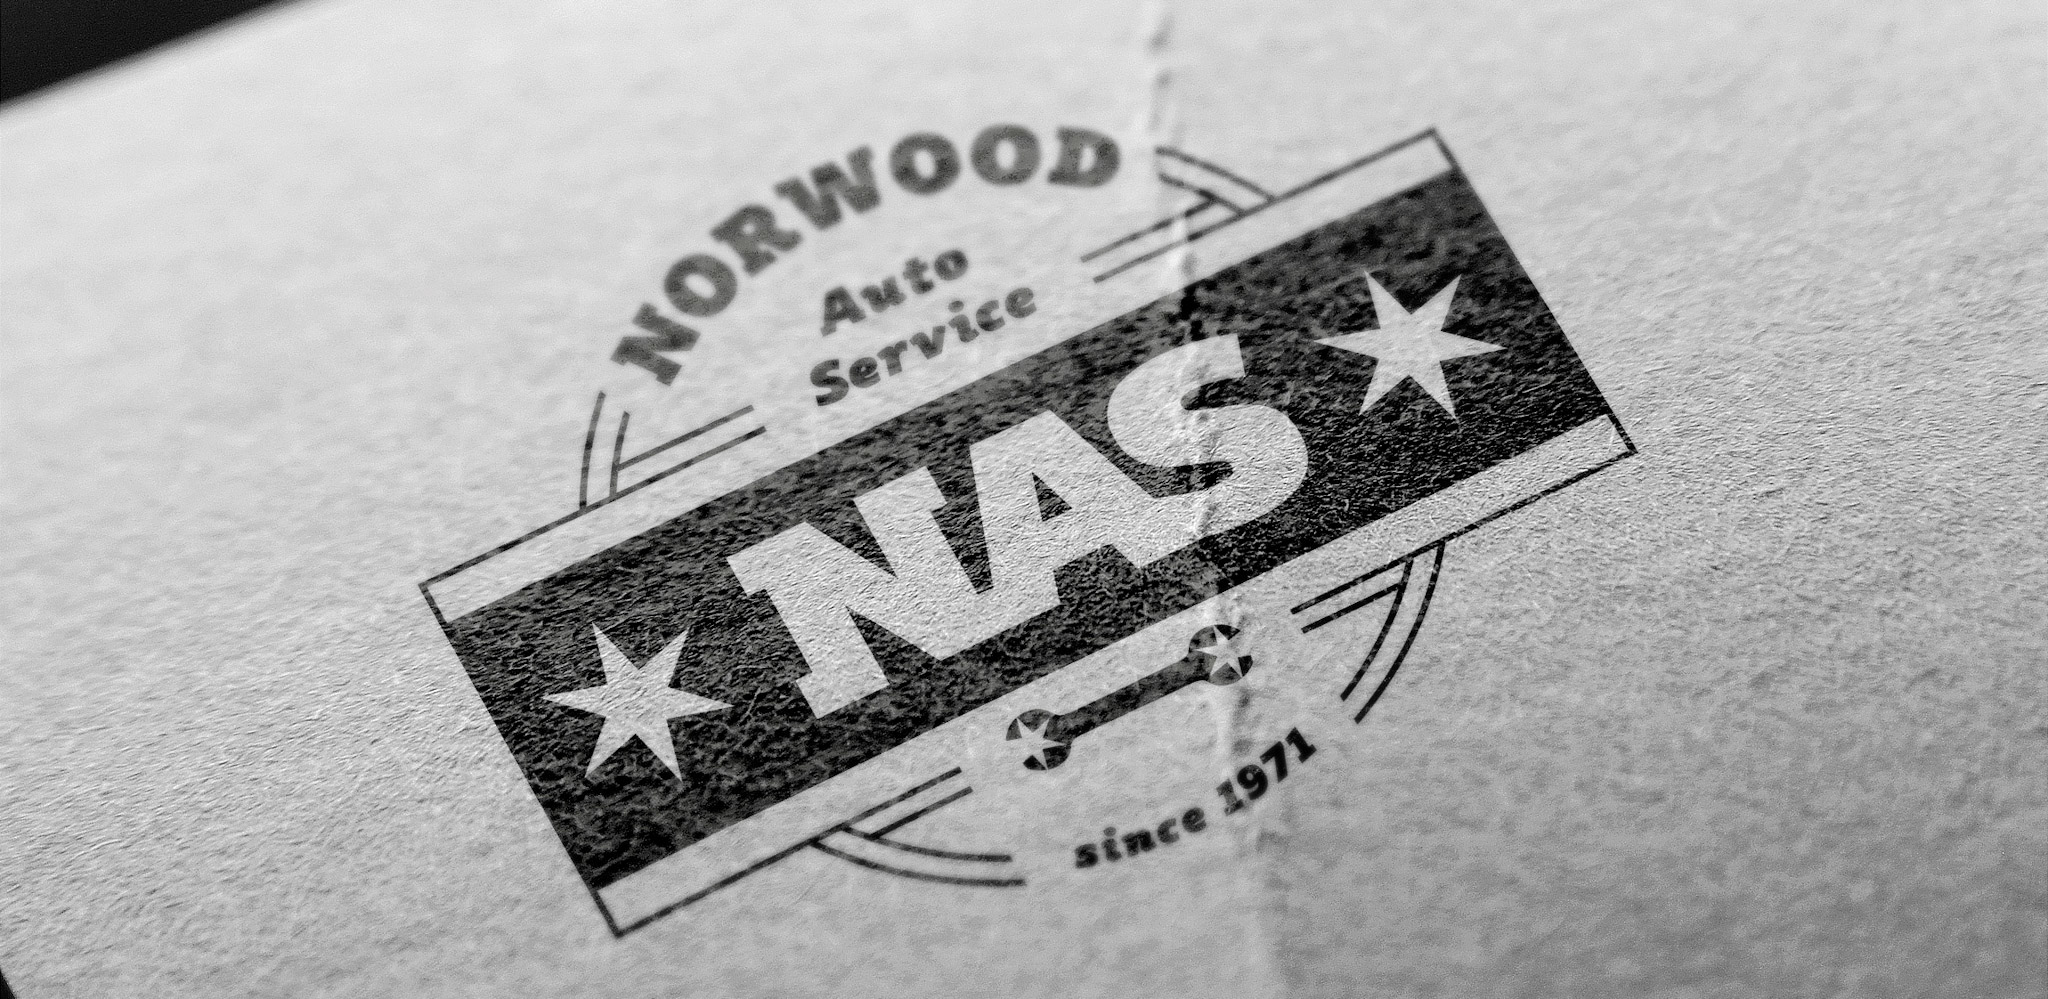 This image shows Norwood Auto Service's (NAS) new logo printed on workout paper. We were asked to create a logo that resonated with the traditional Chicago neighborhood that's home to a lot of old-school Chicagoans.